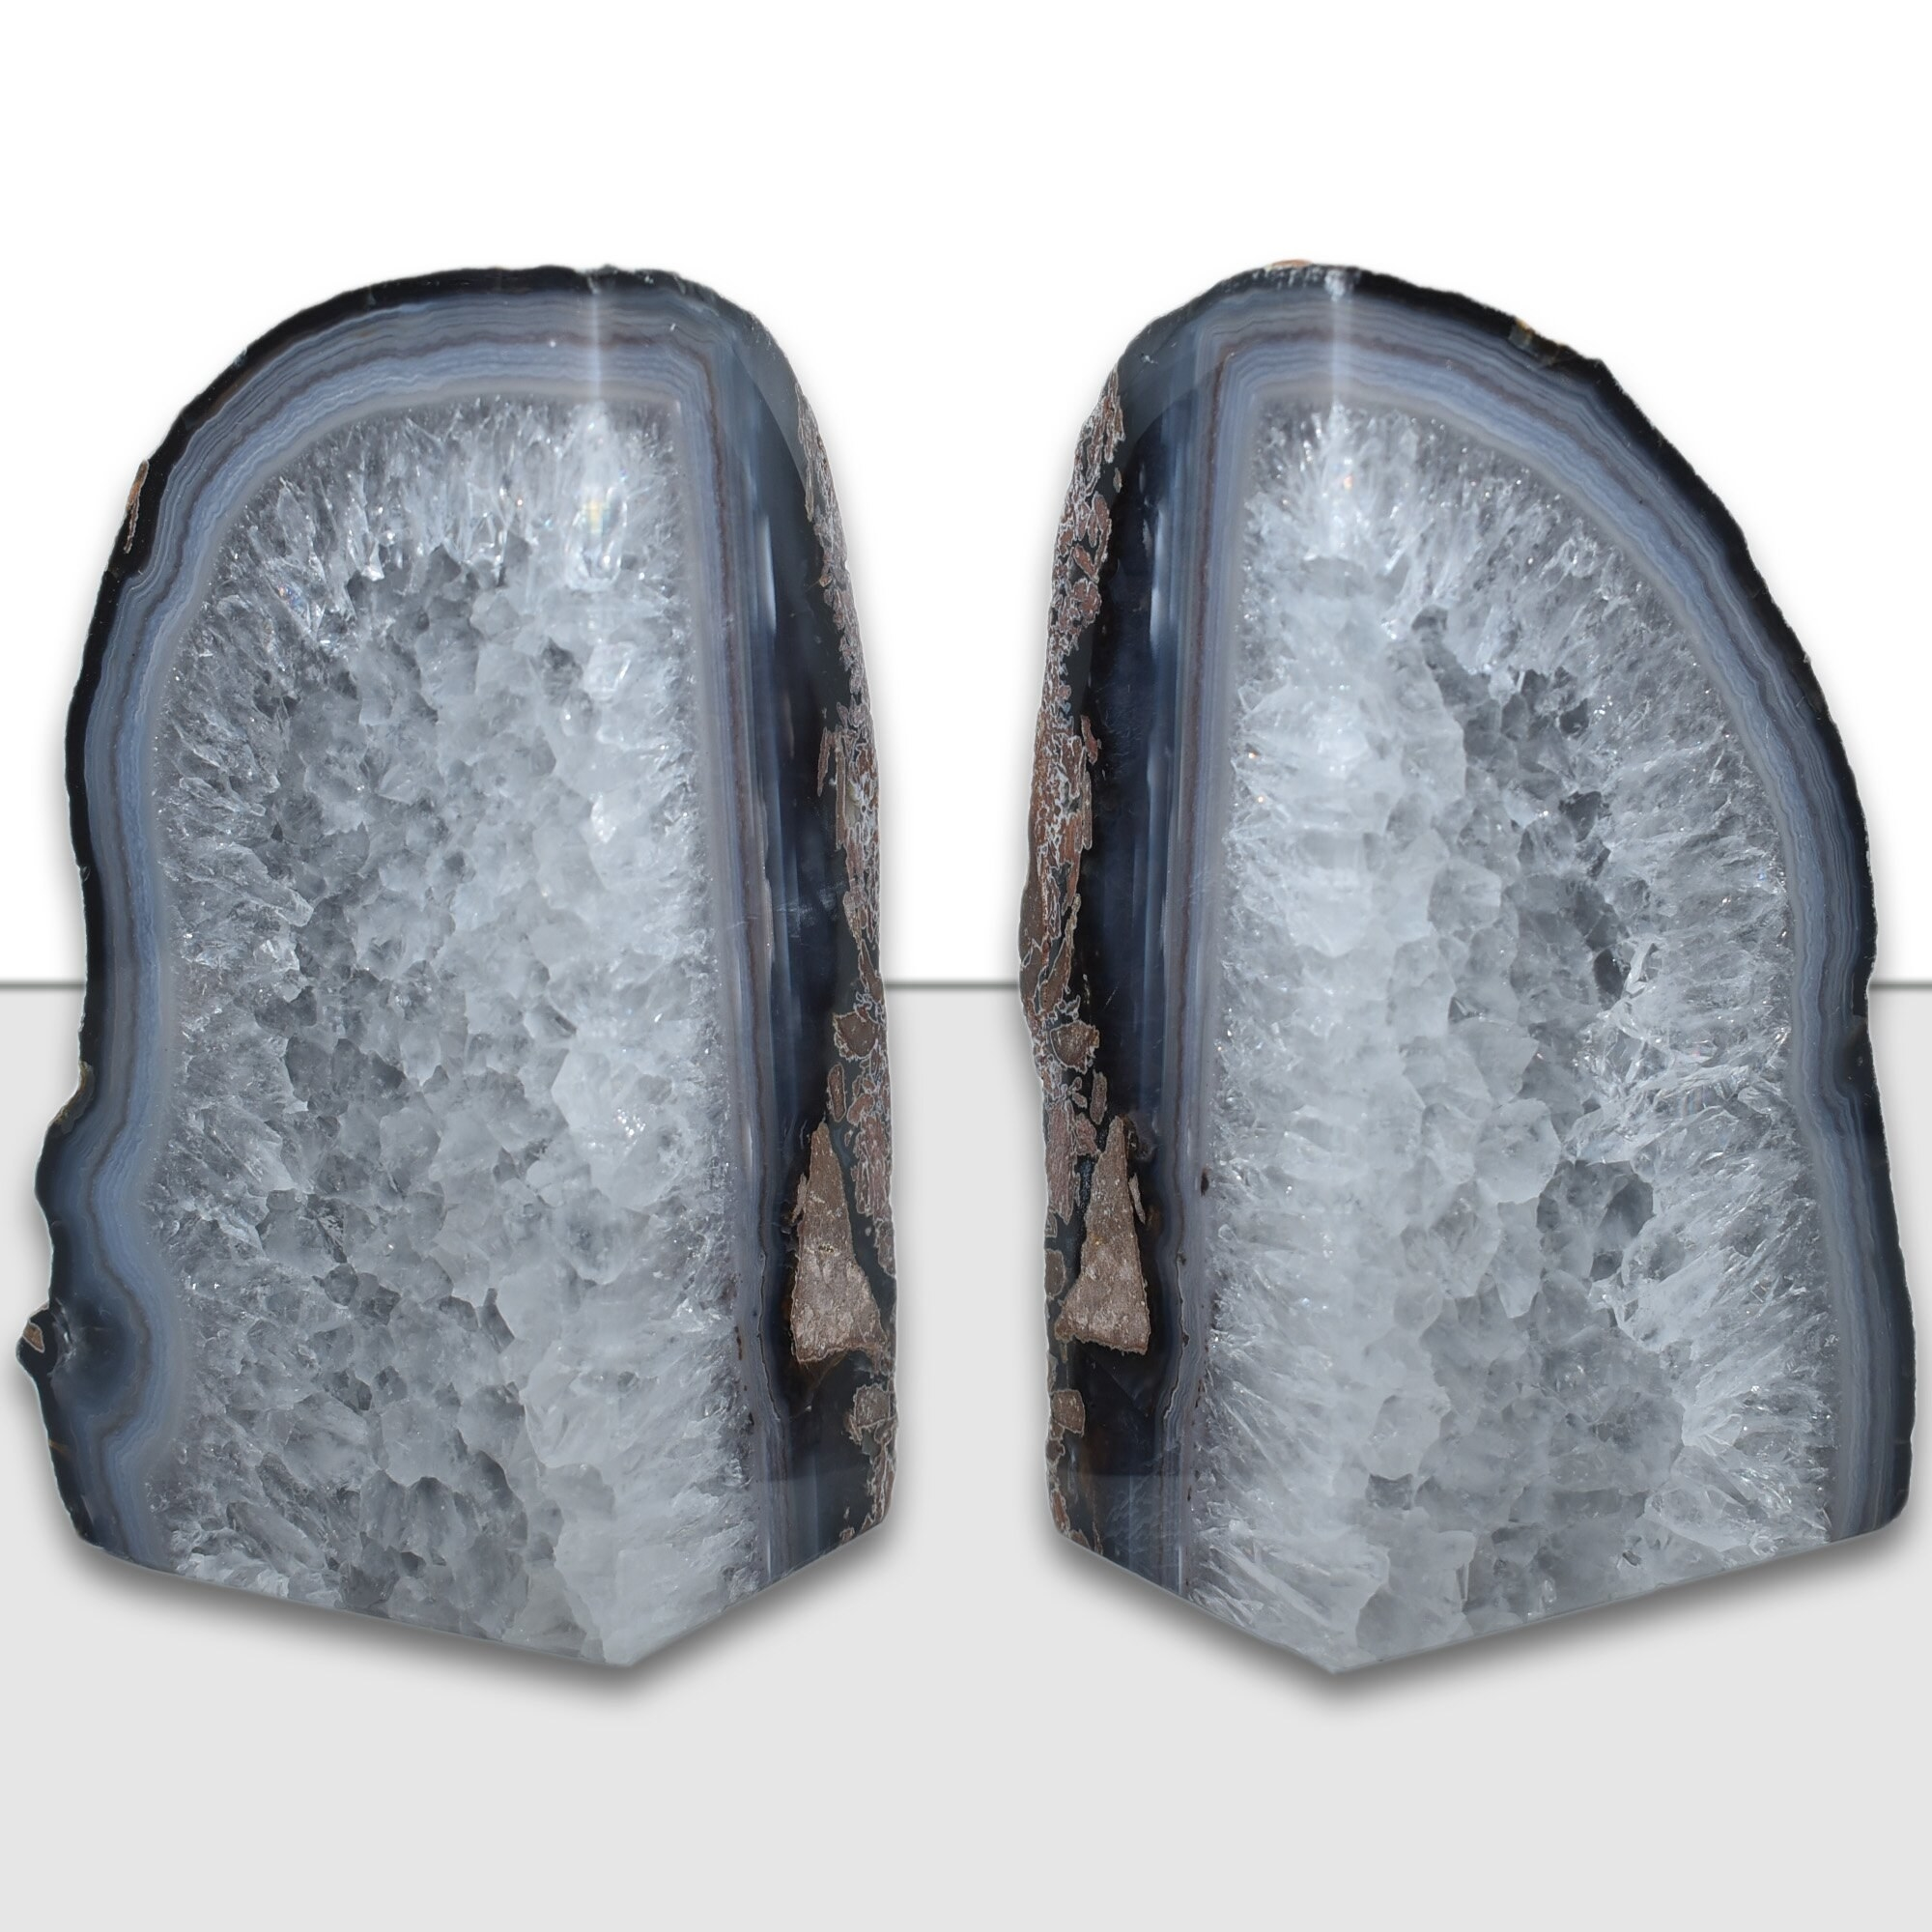 Blue and gray agate bookends